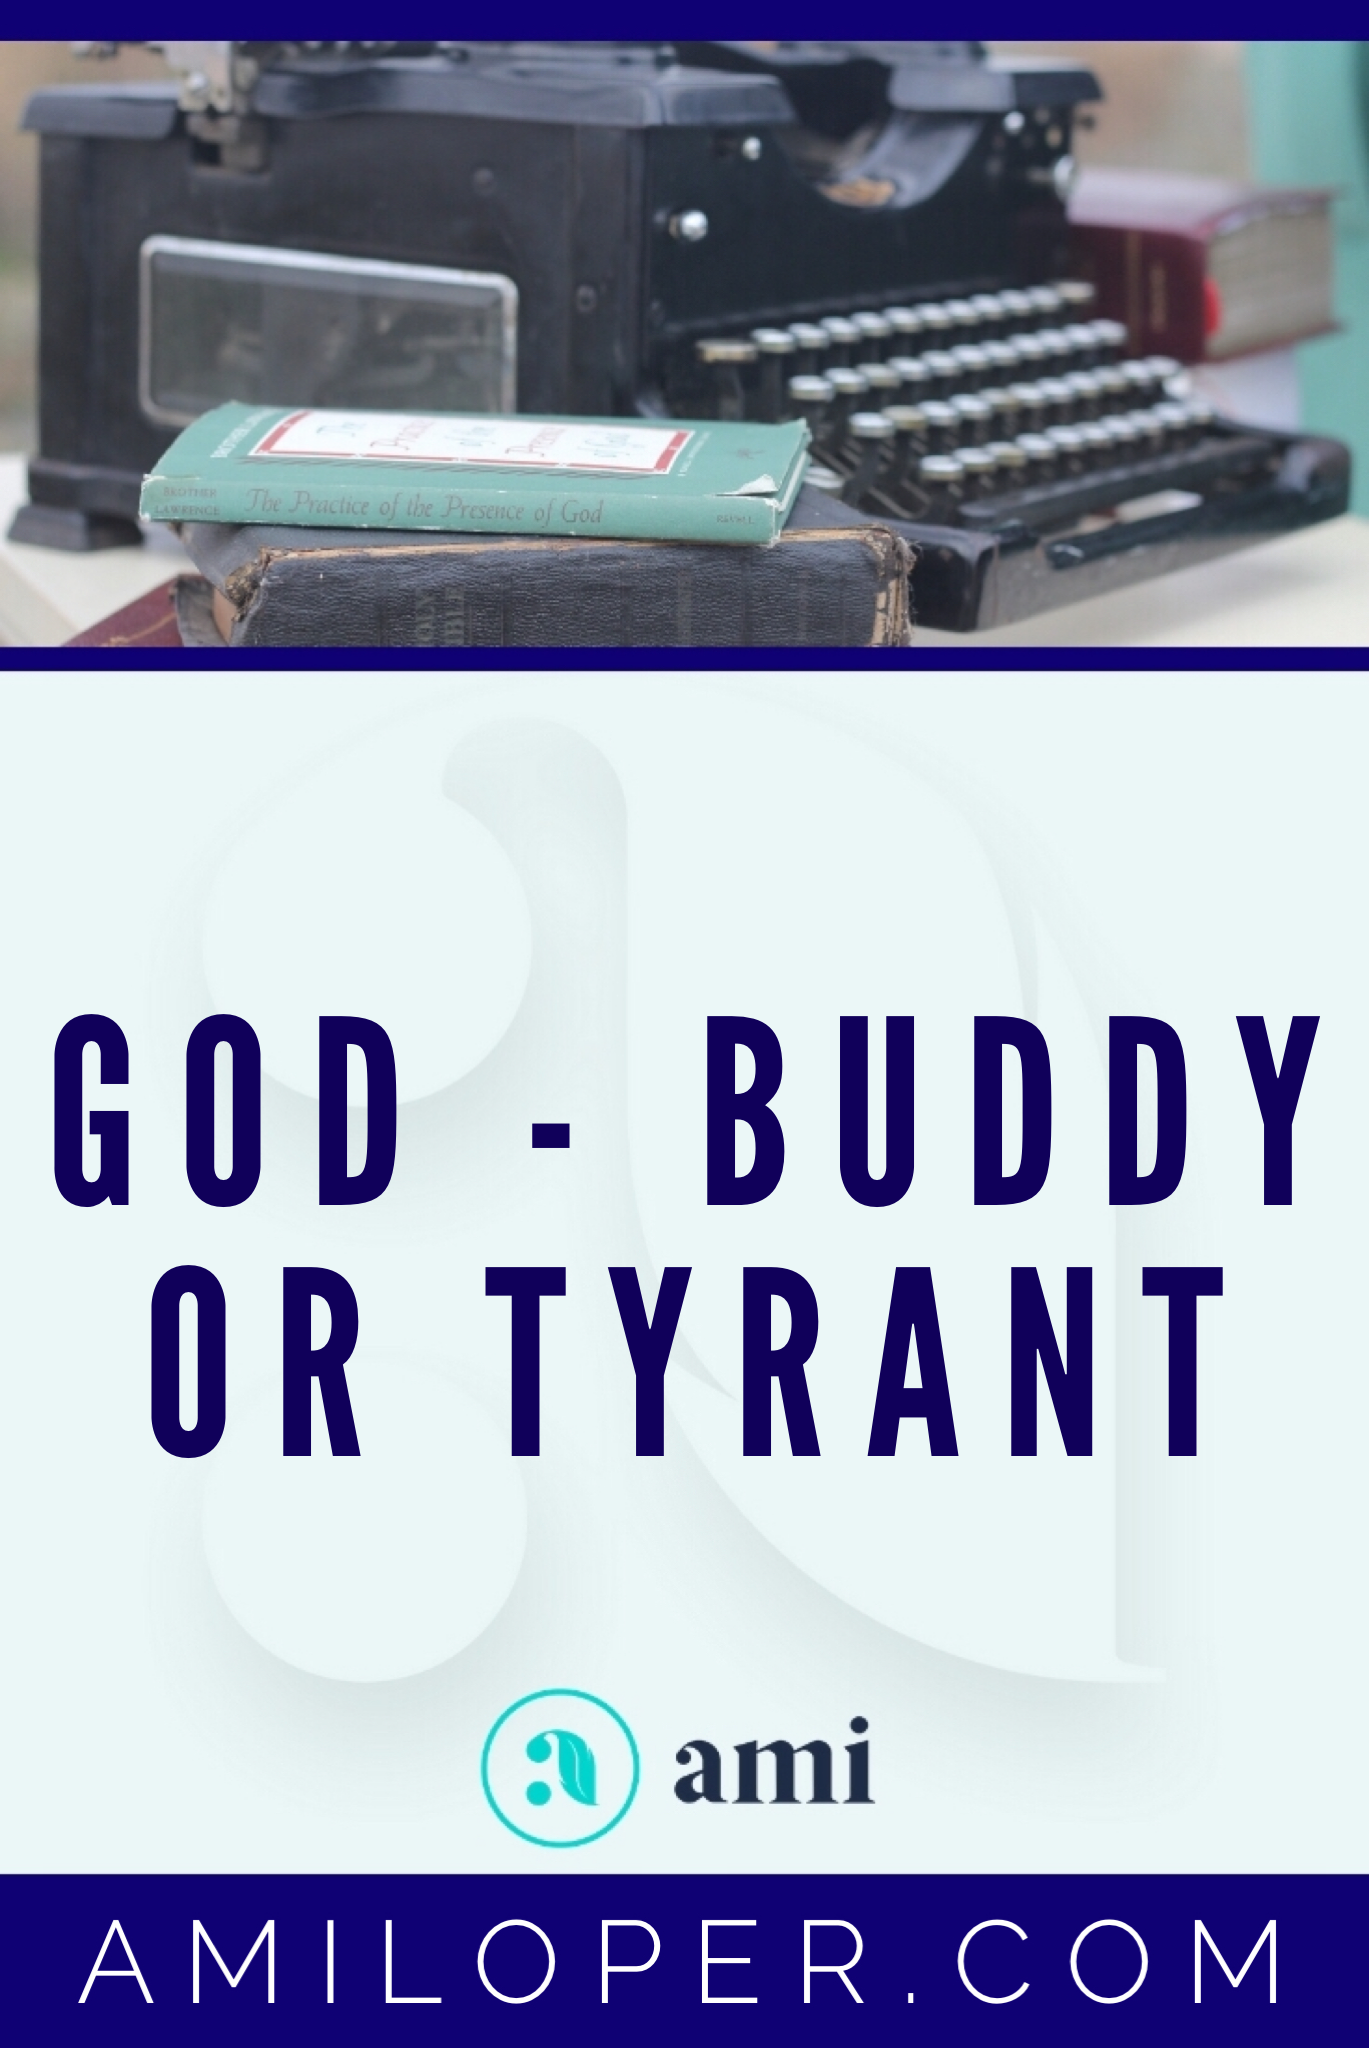 Is God our Cosmic Buddy or a Distant Tyrant? Or is He something else entirely? As humans we tend to gravitate toward one end of the spectrum or the other. But there is danger in the extremes and safety in the truth. What are those dangers and how can we reject our extremes and find the truth? #relationshipGoals #ChristianBlog